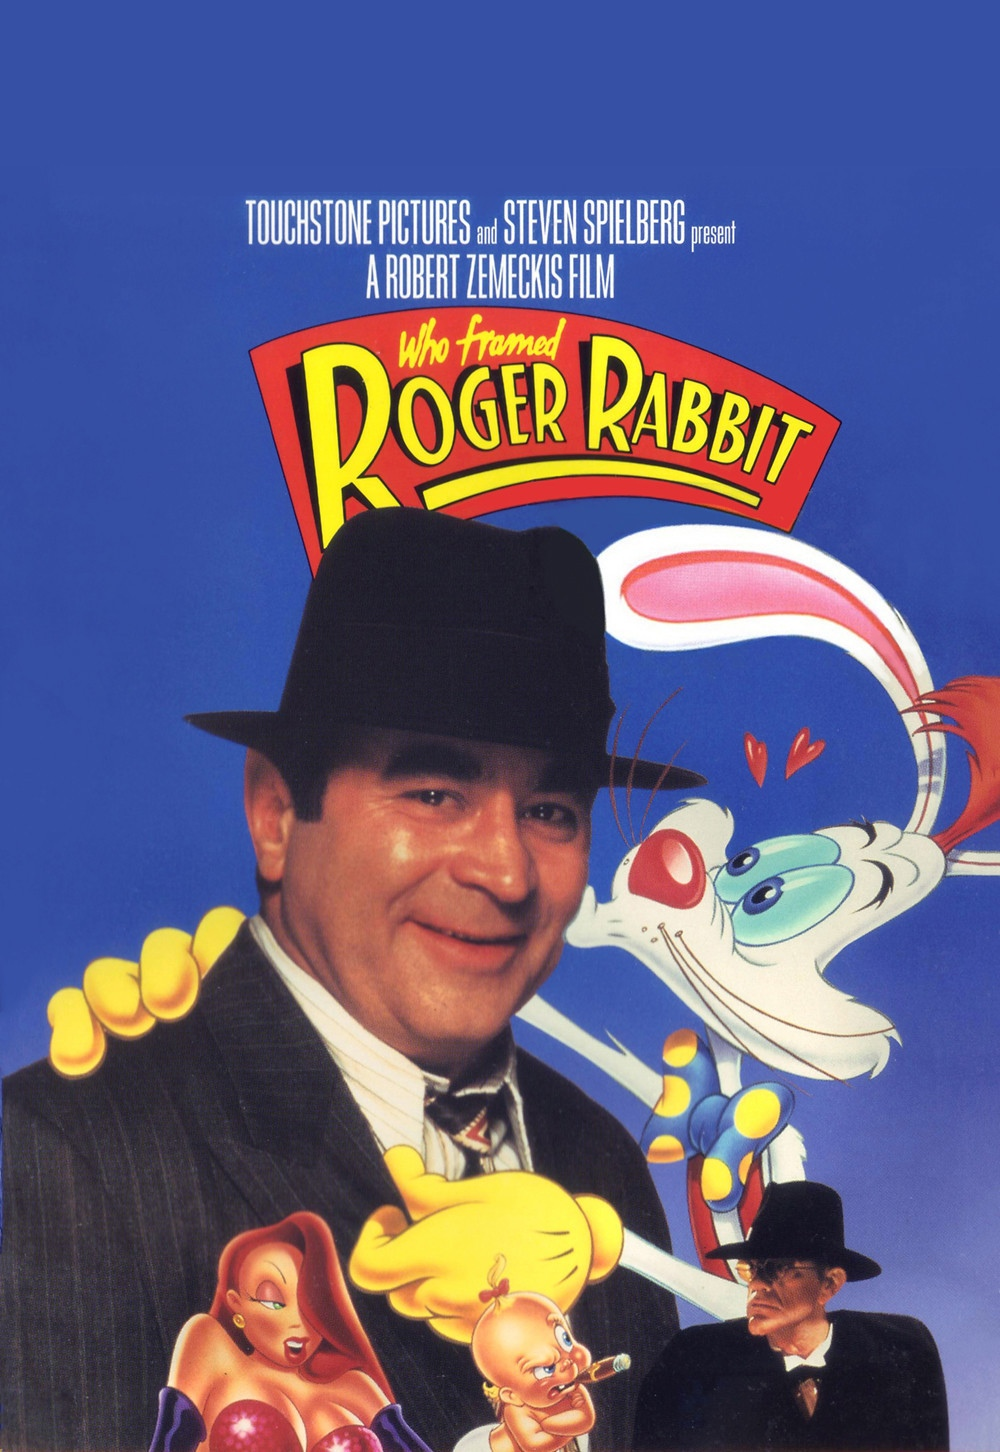 who framed roger rabbit picture who framed roger rabbit movie